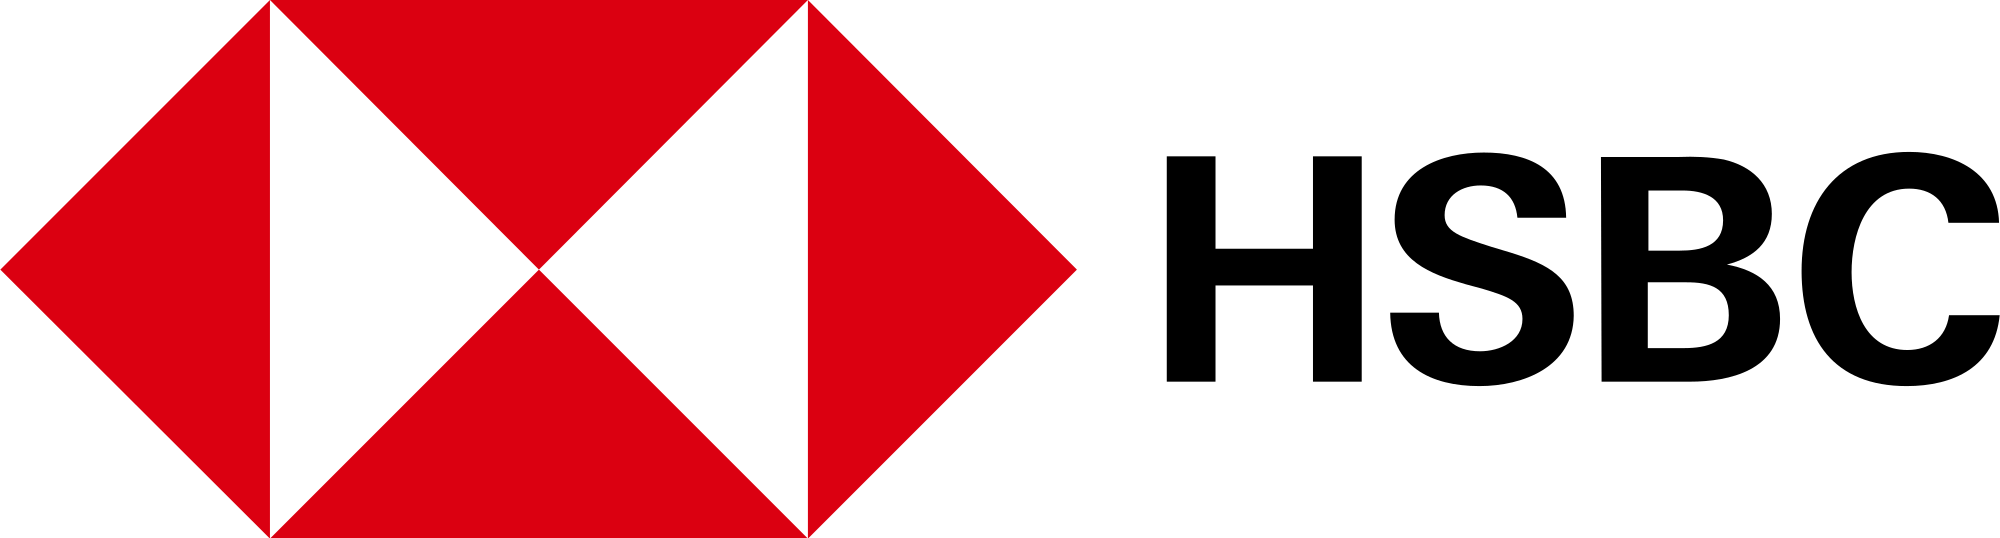 HSBC Logo - File:HSBC logo (2018).svg - Wikimedia Commons